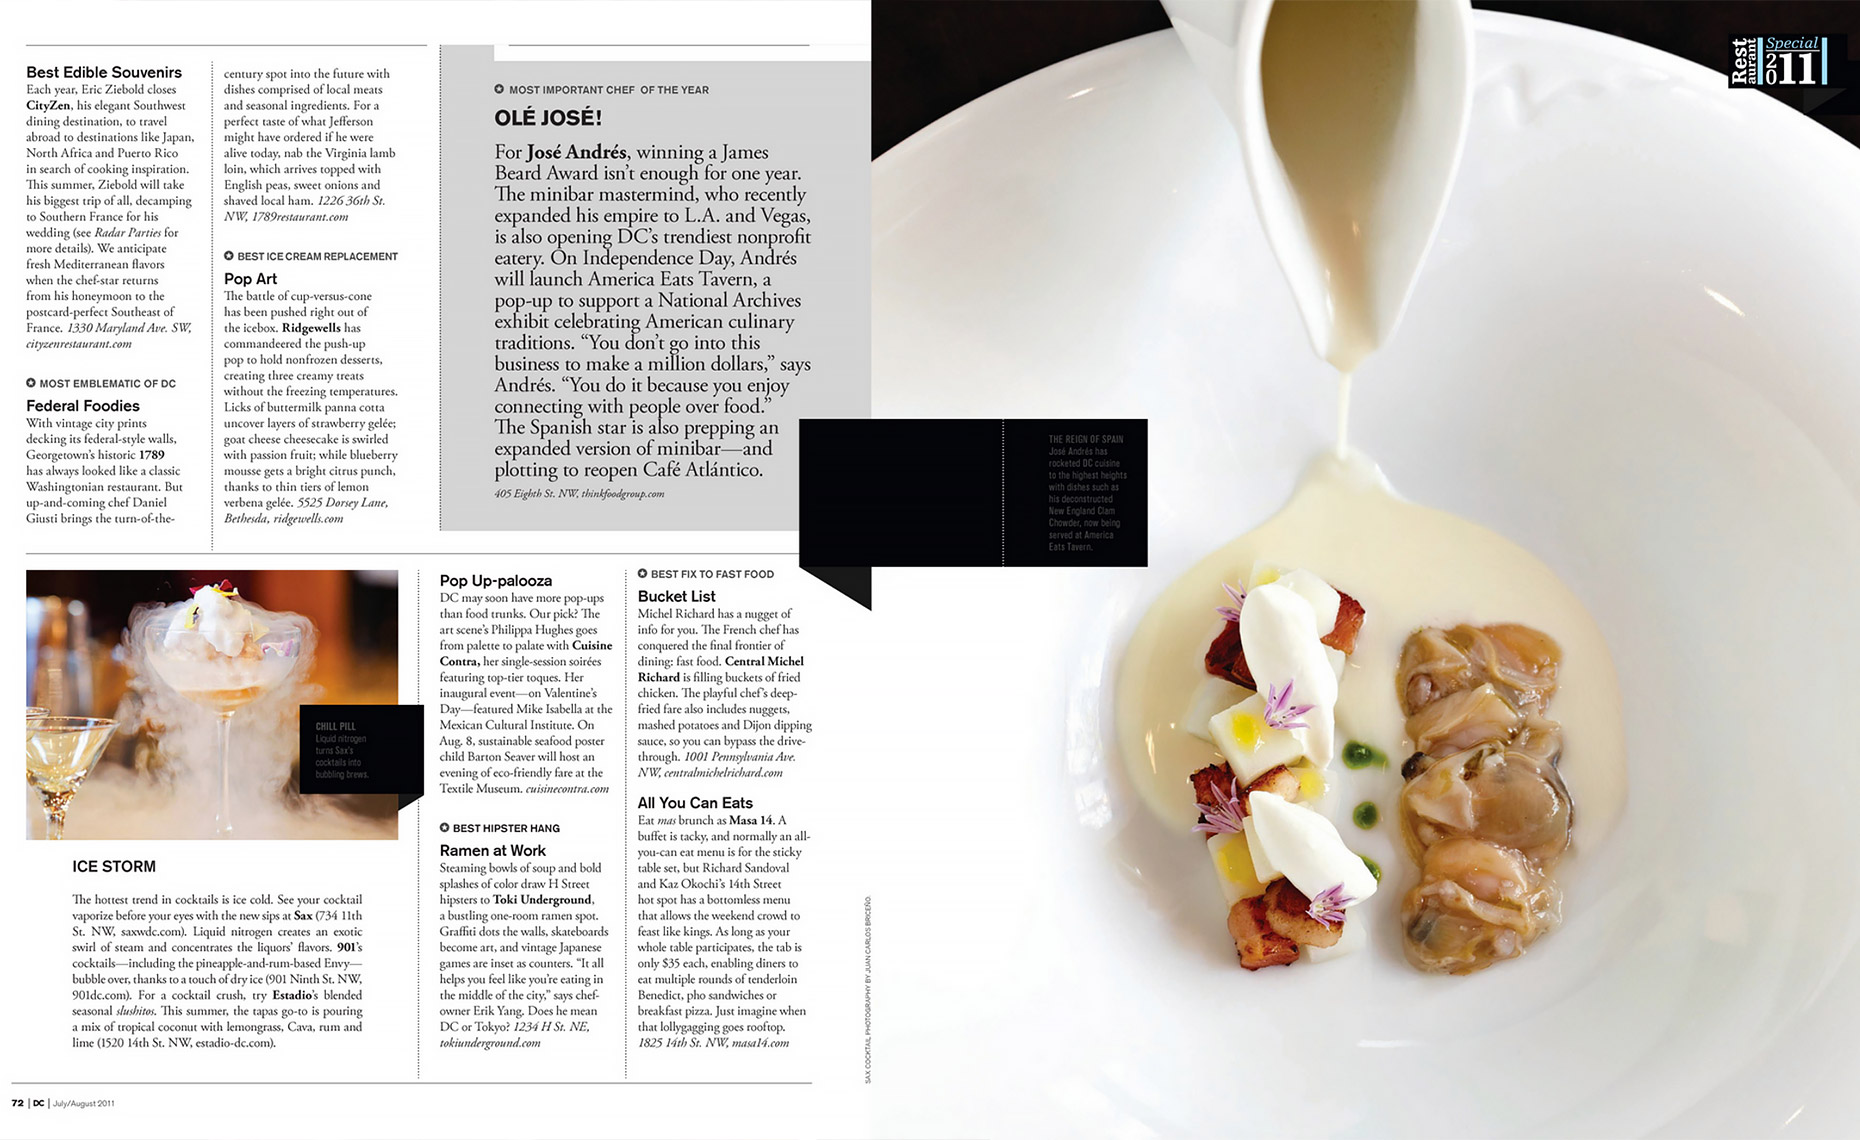 DCML-Restaurant-Issue-2011-2